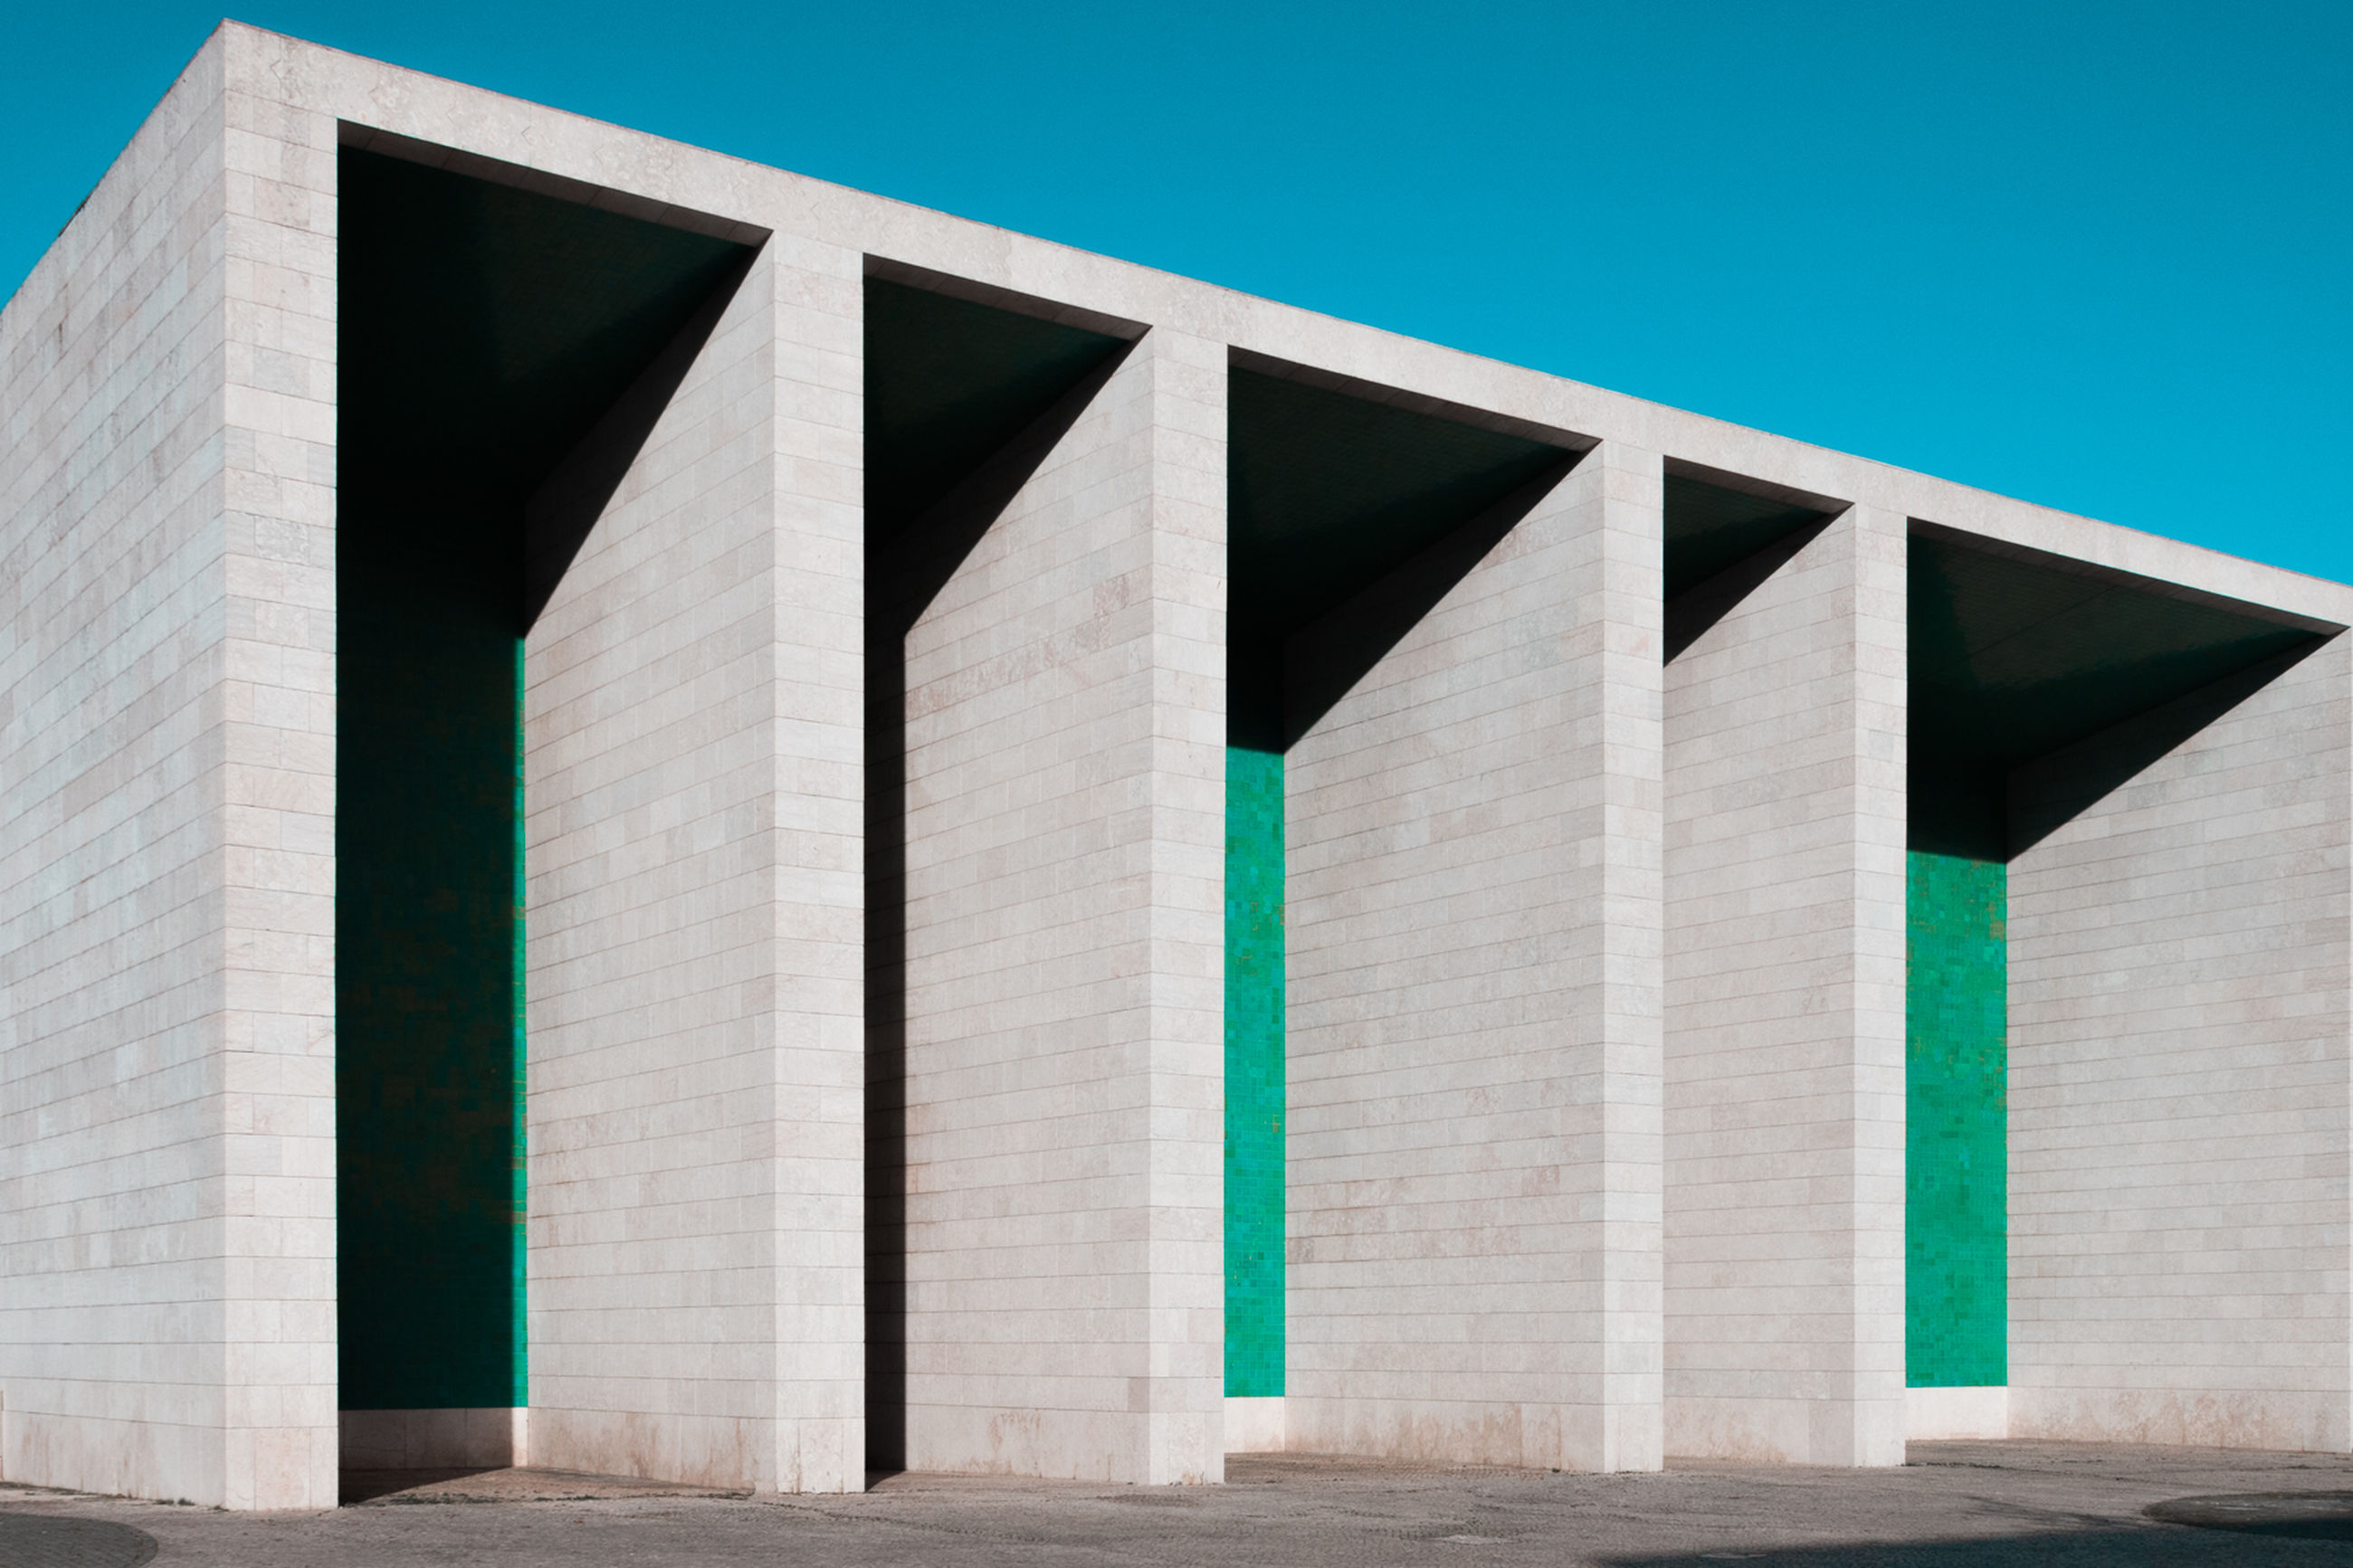 architecture, built structure, no people, building exterior, sky, blue, clear sky, low angle view, day, nature, outdoors, green color, side by side, sunlight, pattern, in a row, design, triangle shape, shape, art and craft, concrete